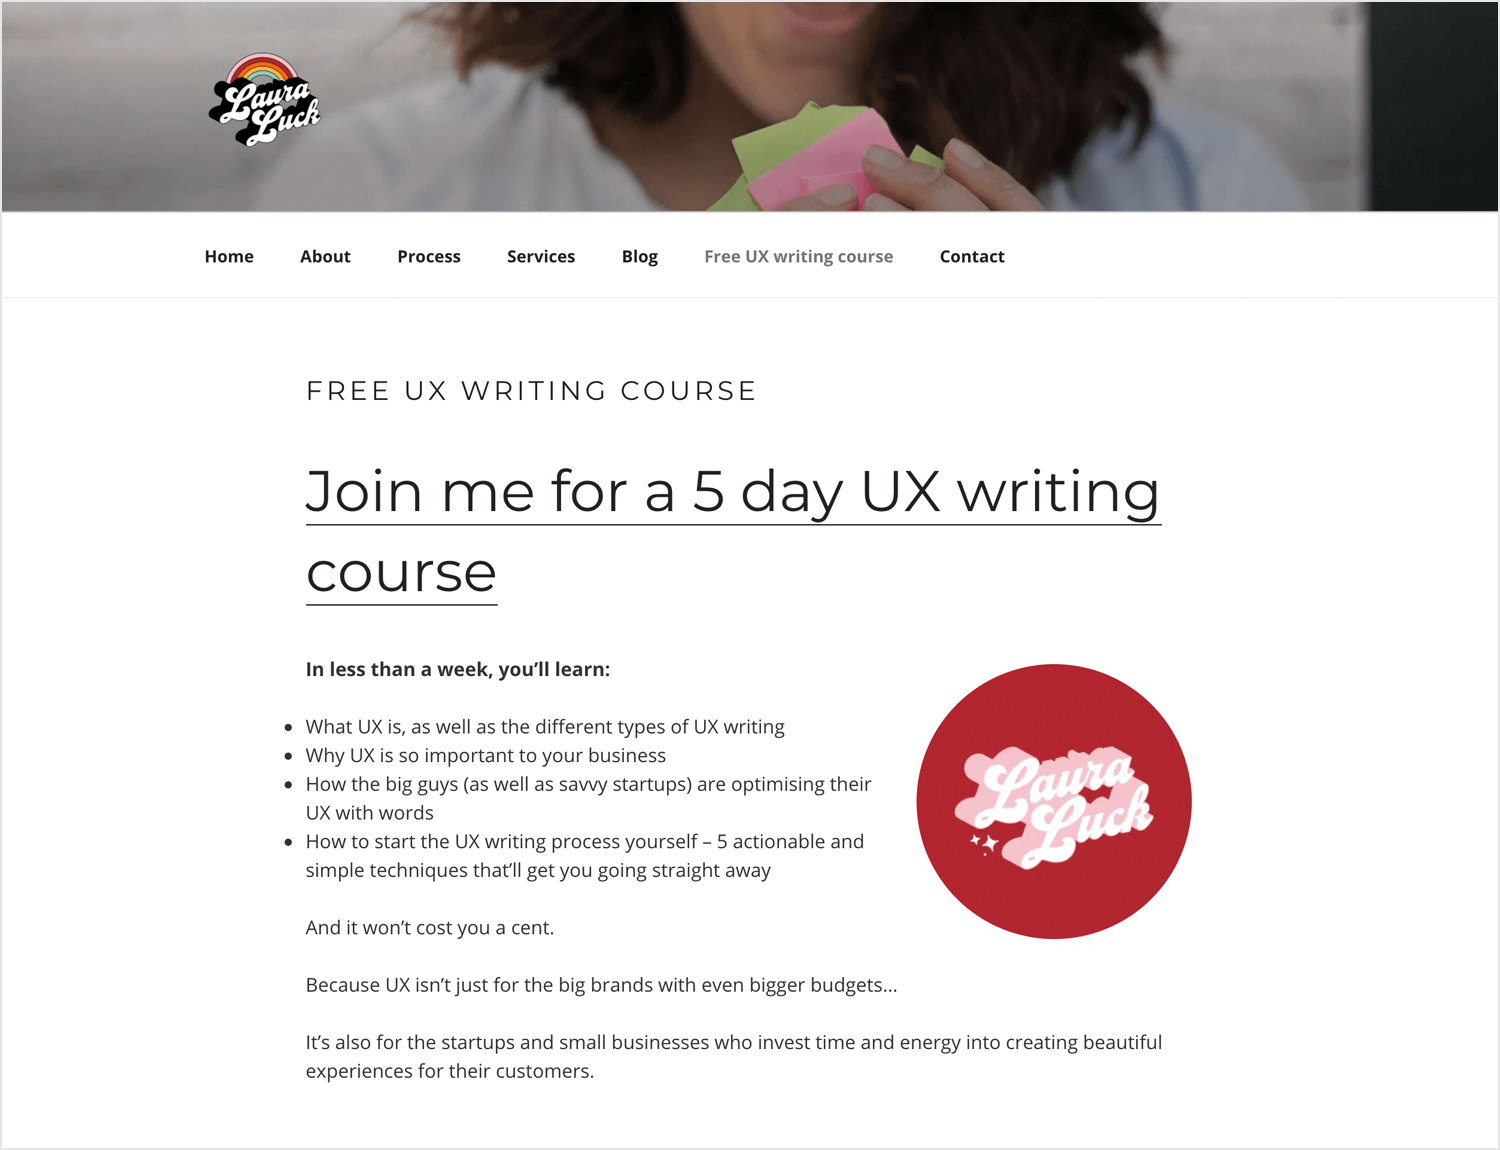 Free UX Writing Course by Laura Luck